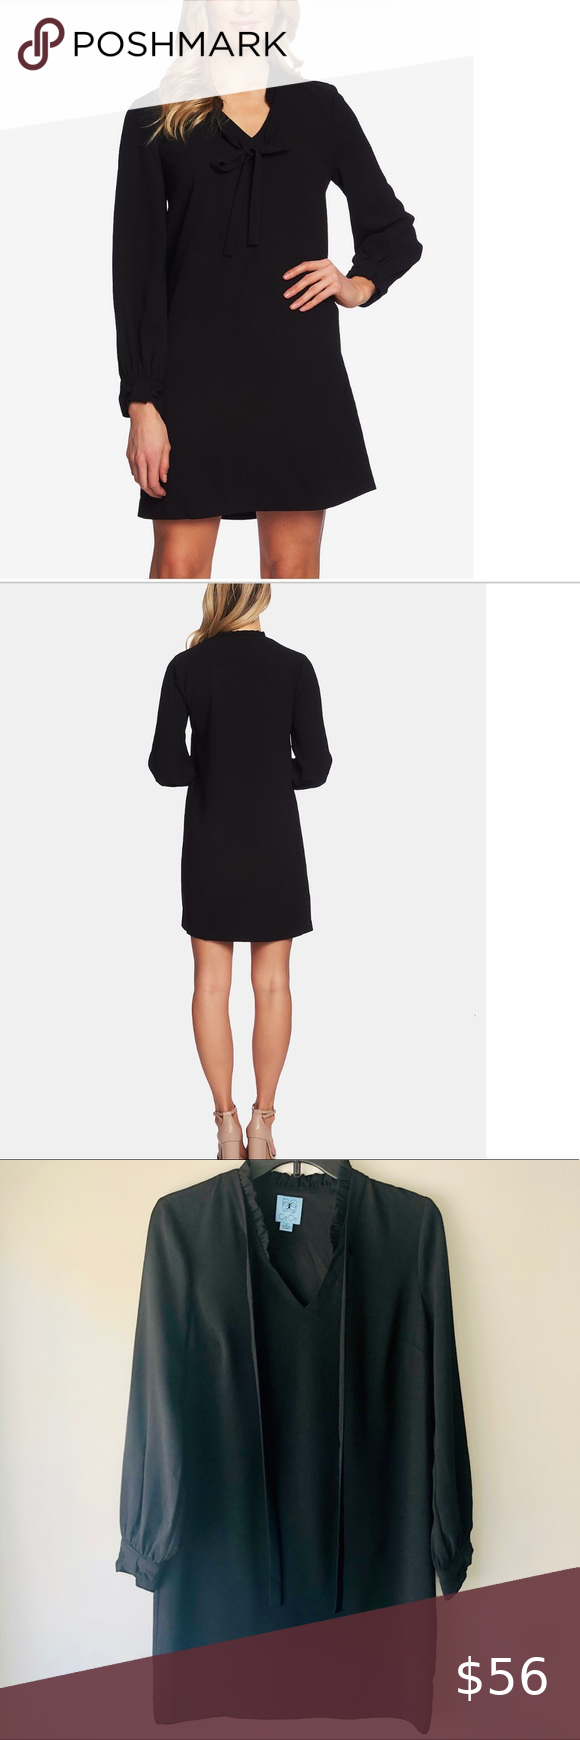 Cece Front Tie Black Dress Size Small A Worthy Business Investment Cece S Structured Dress Is Presentation Ready Per Black Dress Cece Dresses Structured Dress [ 1740 x 580 Pixel ]